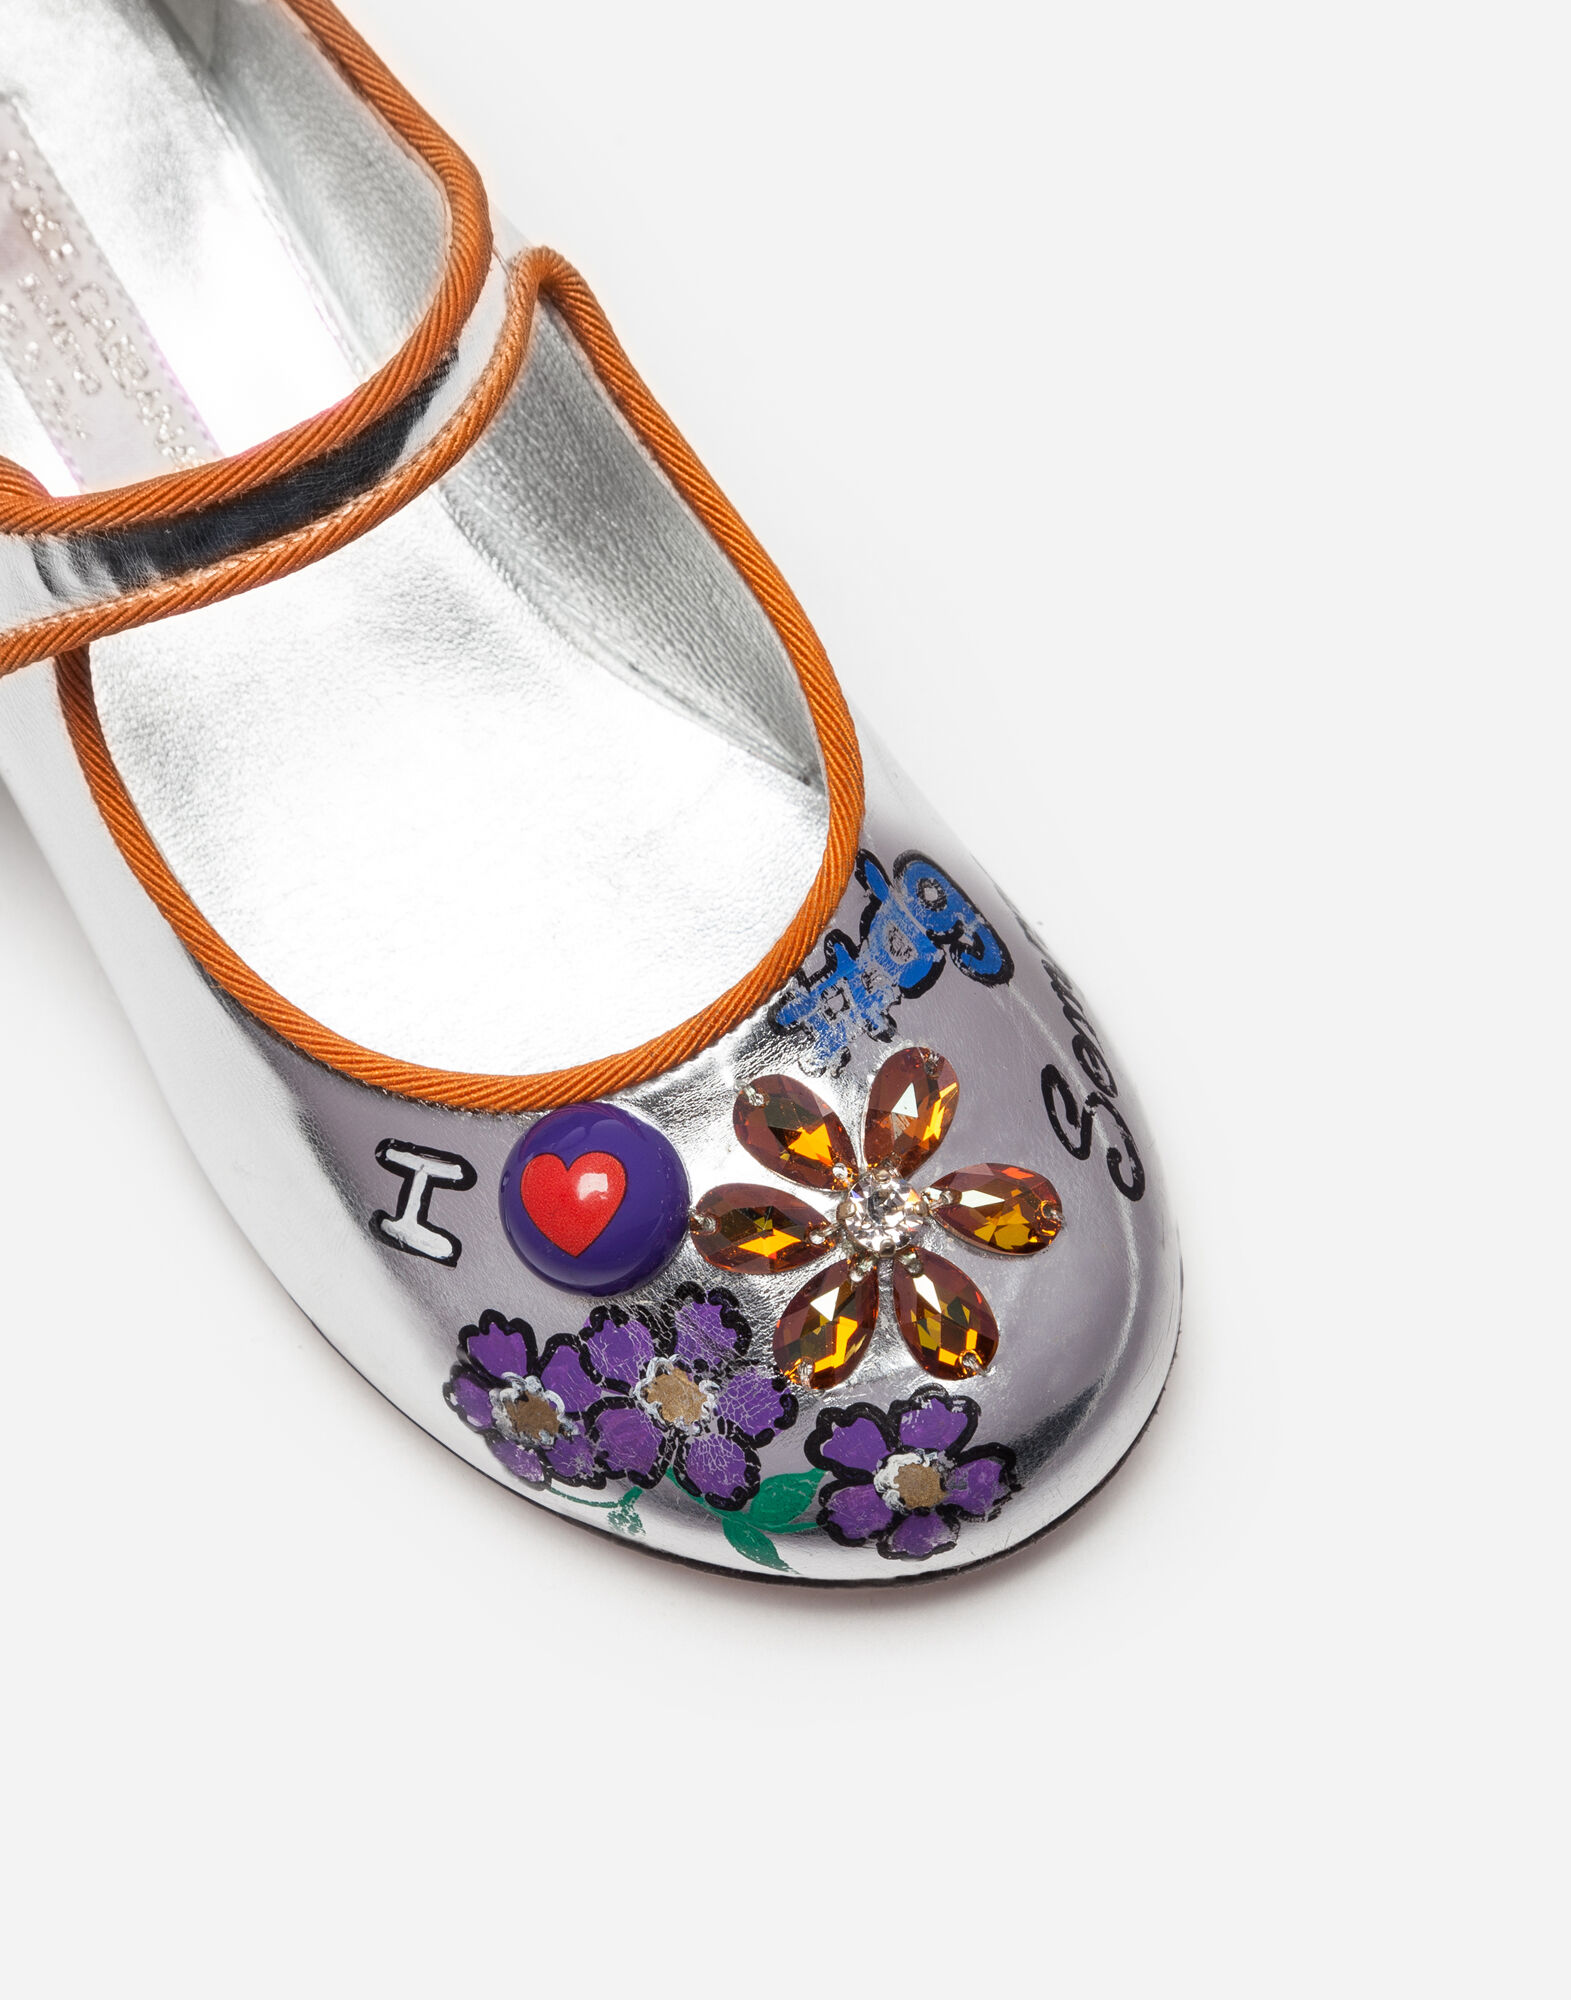 Dolce&Gabbana LAMINATED LEATHER BALLET FLATS WITH APPLIQUÉS